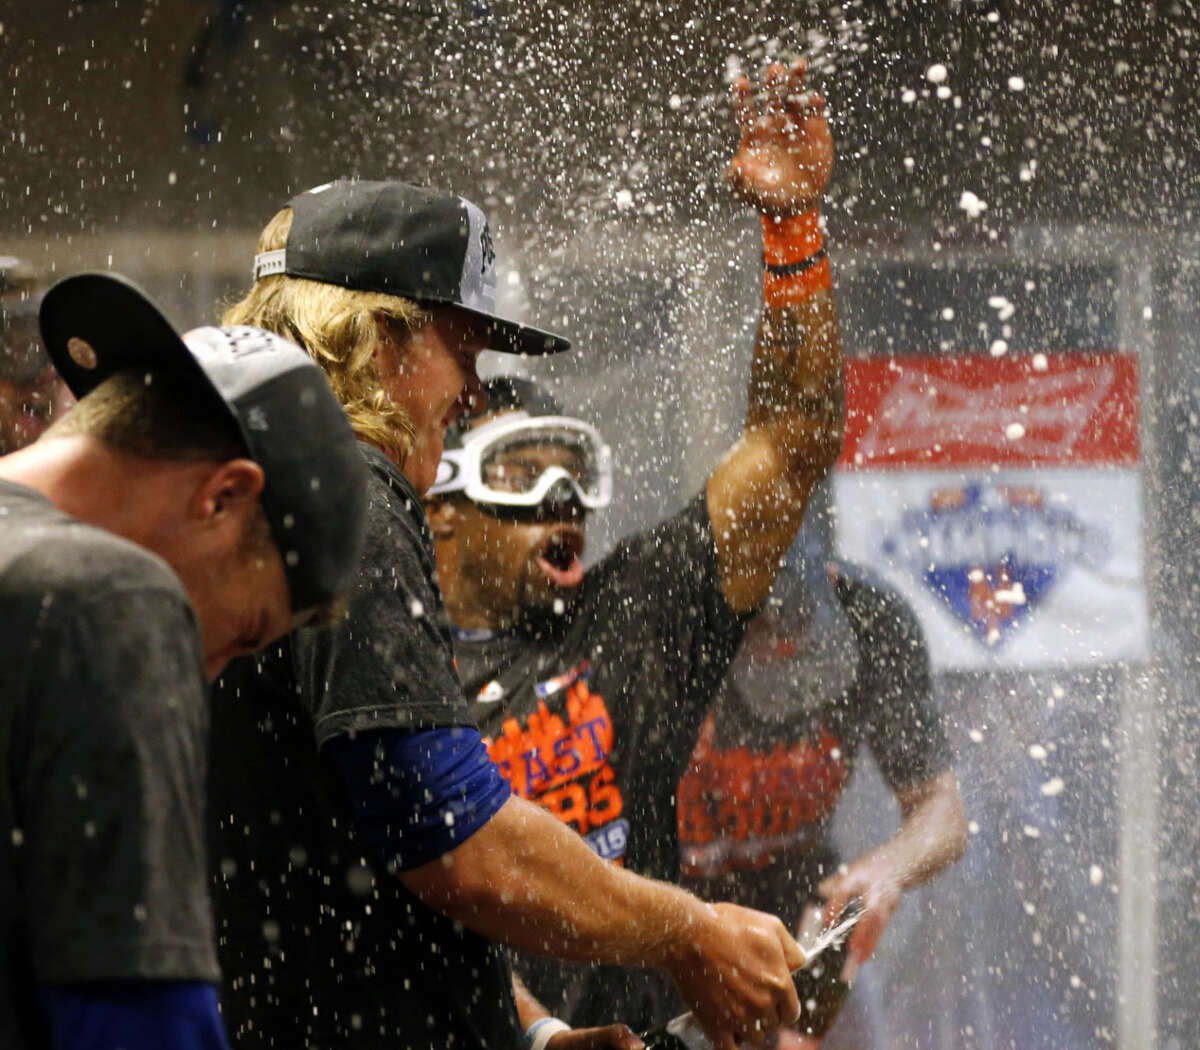 The New York Mets celebrate in the clubhouse after clinching the NL East title following their 10-2 win over the Cincinnati Reds in a baseball game, Saturday, Sept. 26, 2015, in Cincinnati. (AP Photo/Aaron Doster)